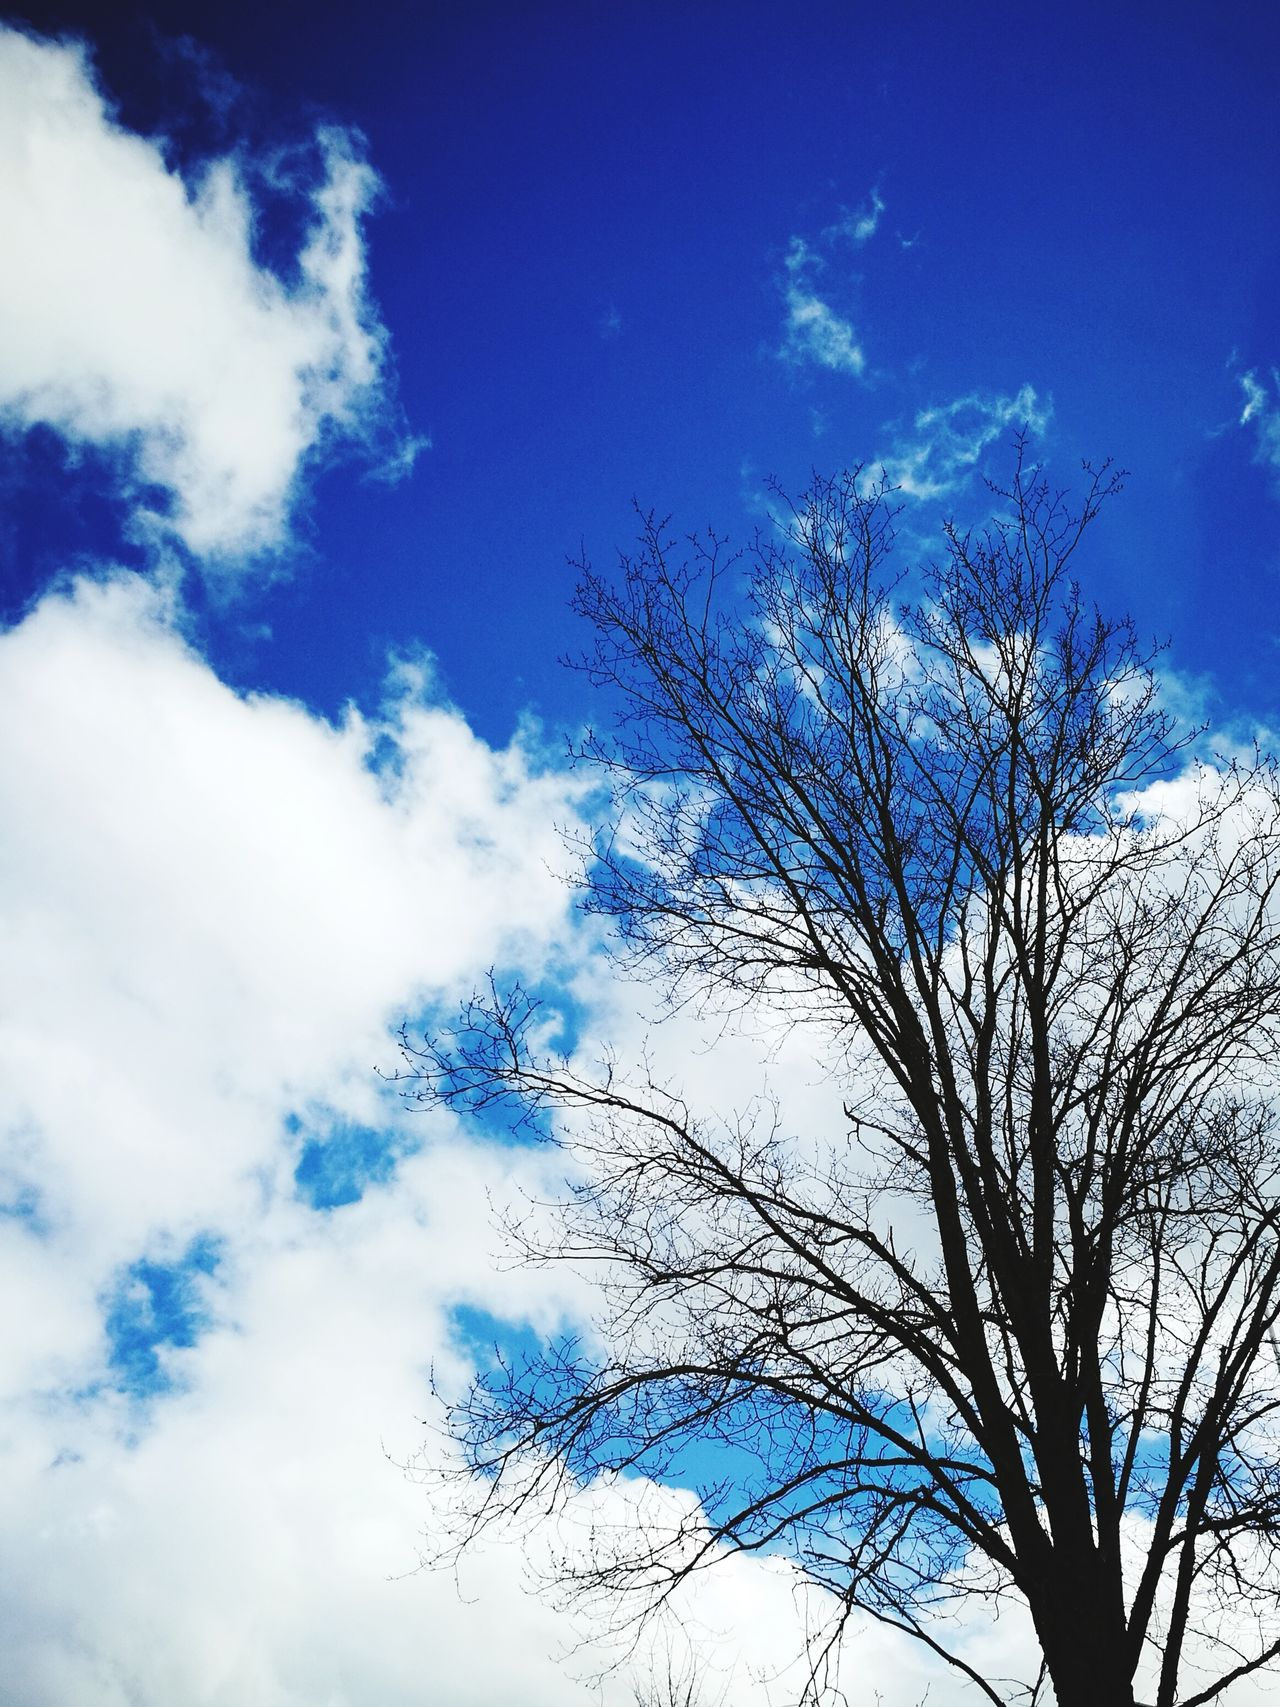 Sky Low Angle View Flying Nature Outdoors Beauty In Nature Day Growth Blue Tree Freshness No People Sky Sky And Clouds Sky And Trees The Great Outdoors - 2017 EyeEm Awards